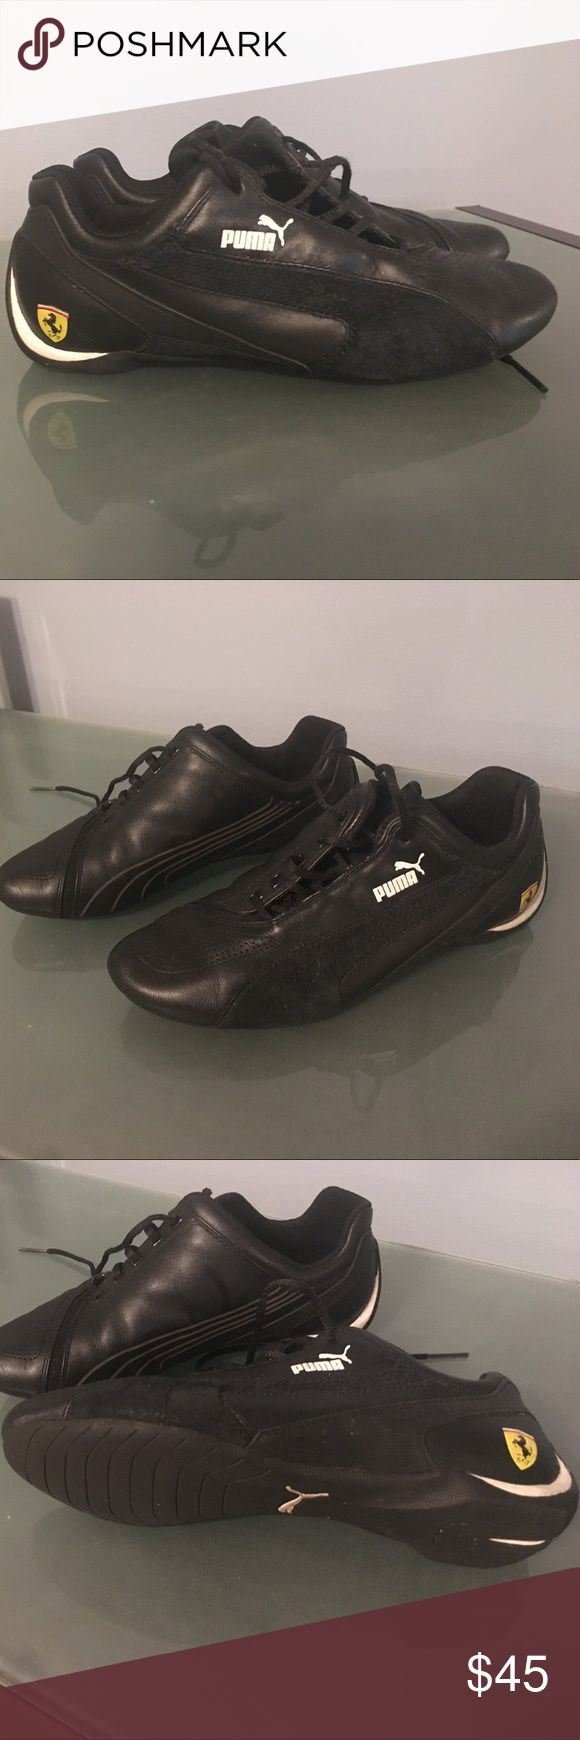 Puma - Ferrari shoes - Size 5.5 (US) - Women Gently used Puma-Ferrari Collection, black sneakers, Size 5.5 (US). No scratches, Smoke free home. If you like to see more pictures please feel free to ask. Thank you 😊 Puma Shoes Sneakers